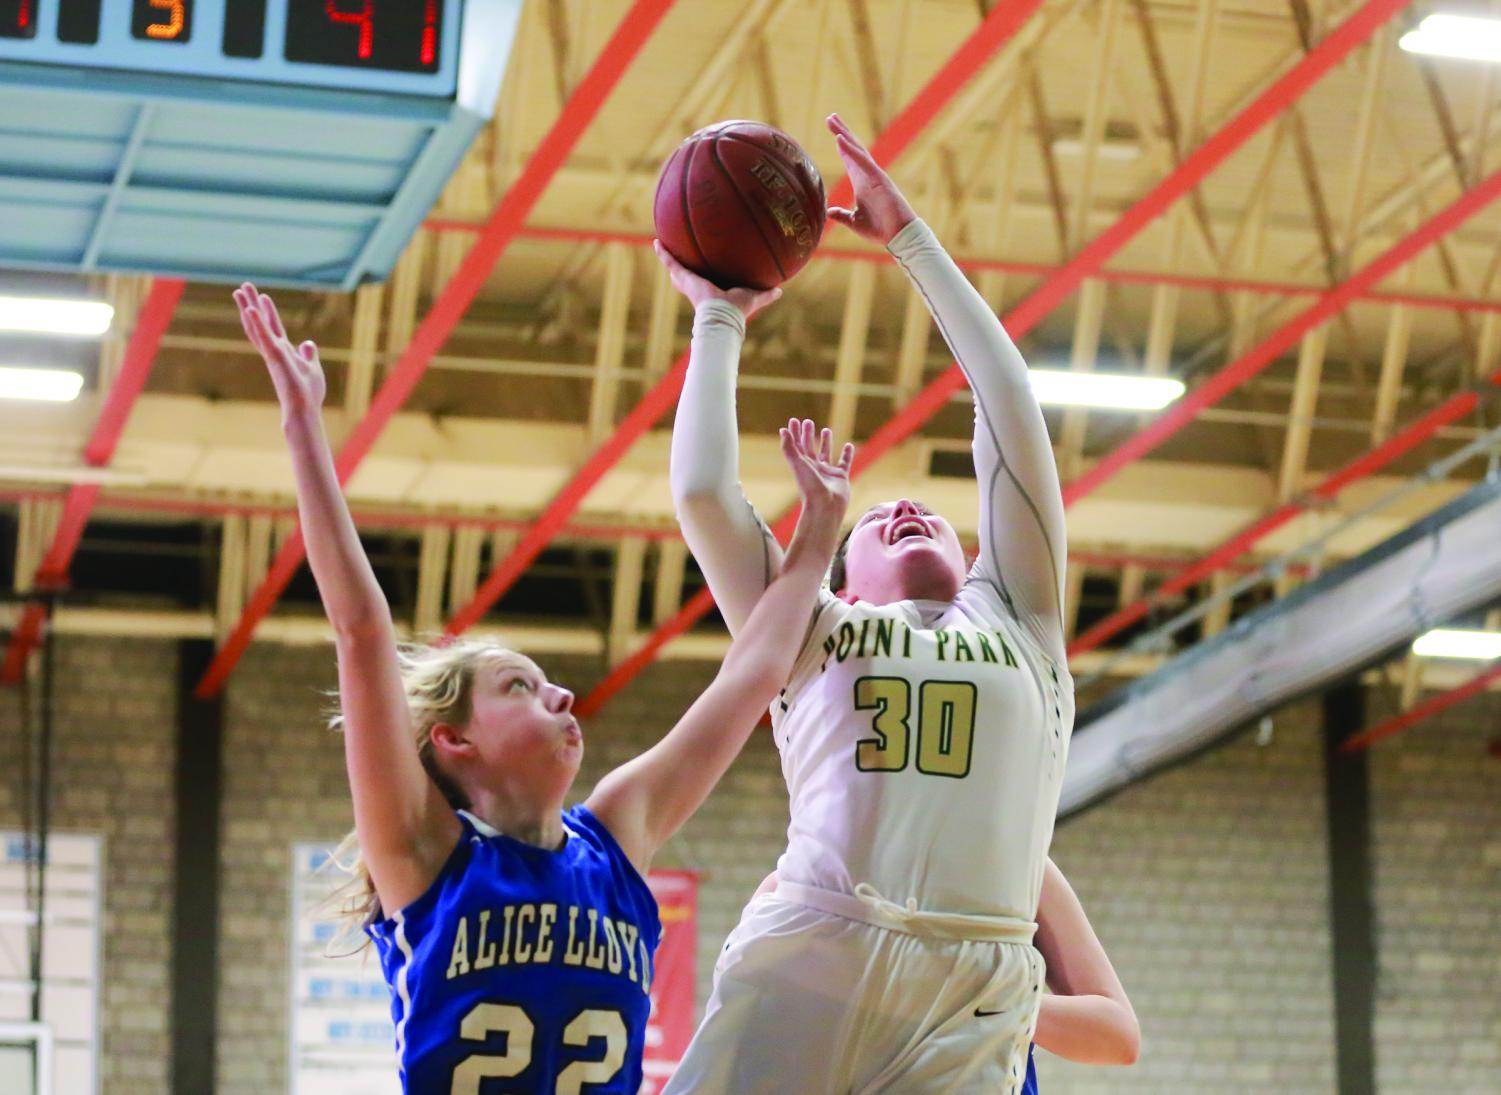 Senior guard Sam Weir attempts a layup during a game earlier this season against Alice Lloyd. Weir totaled 18 points last week against Carlow.